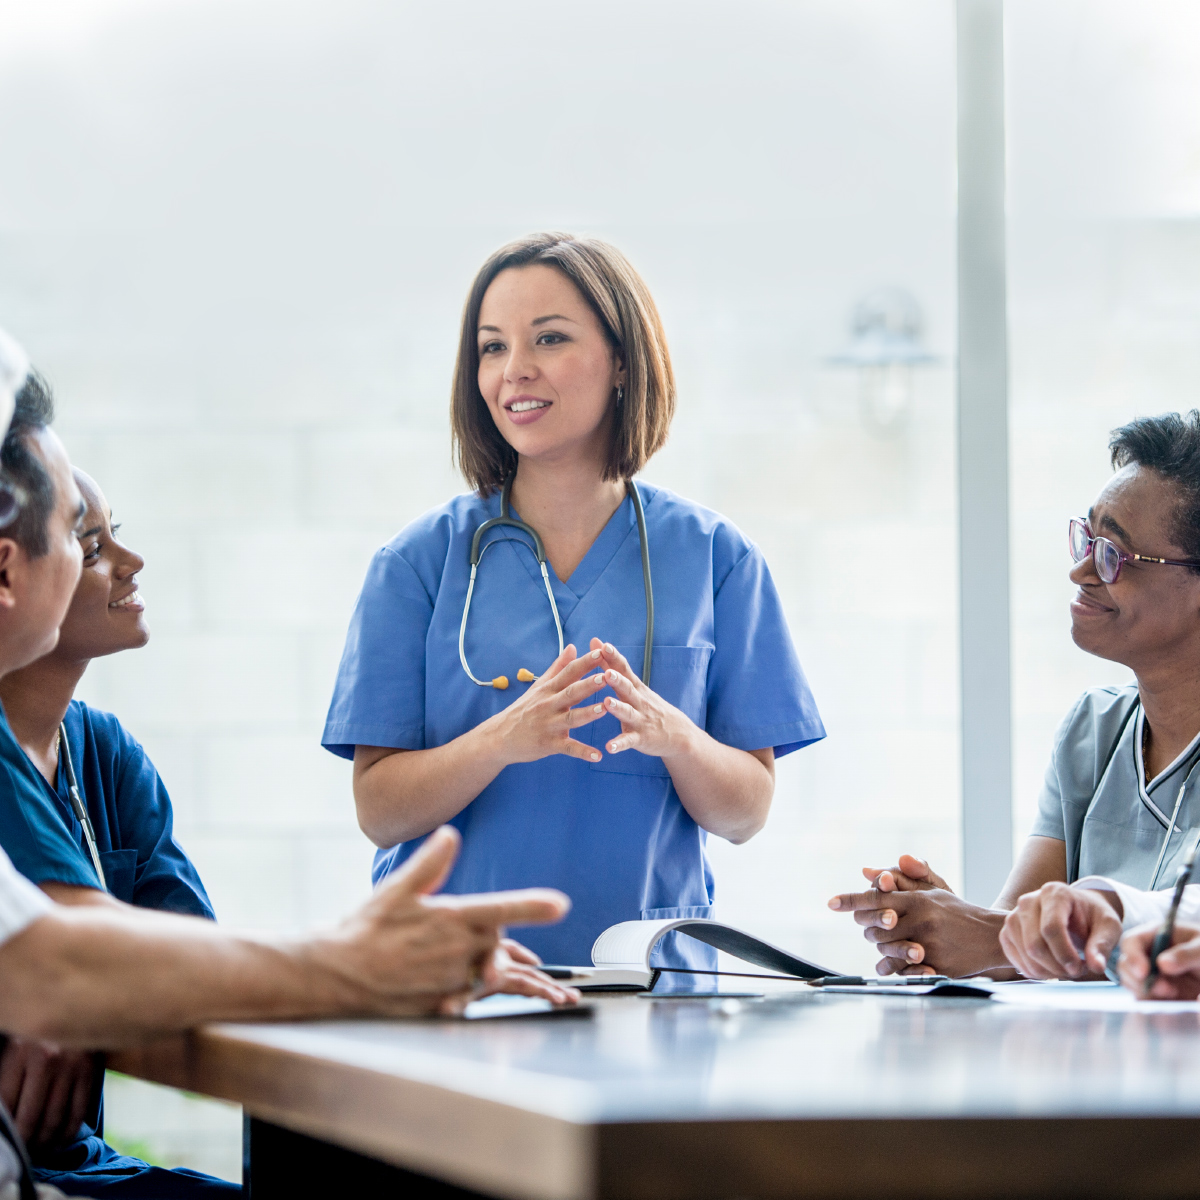 smiling female doctor addressing other doctors around a table